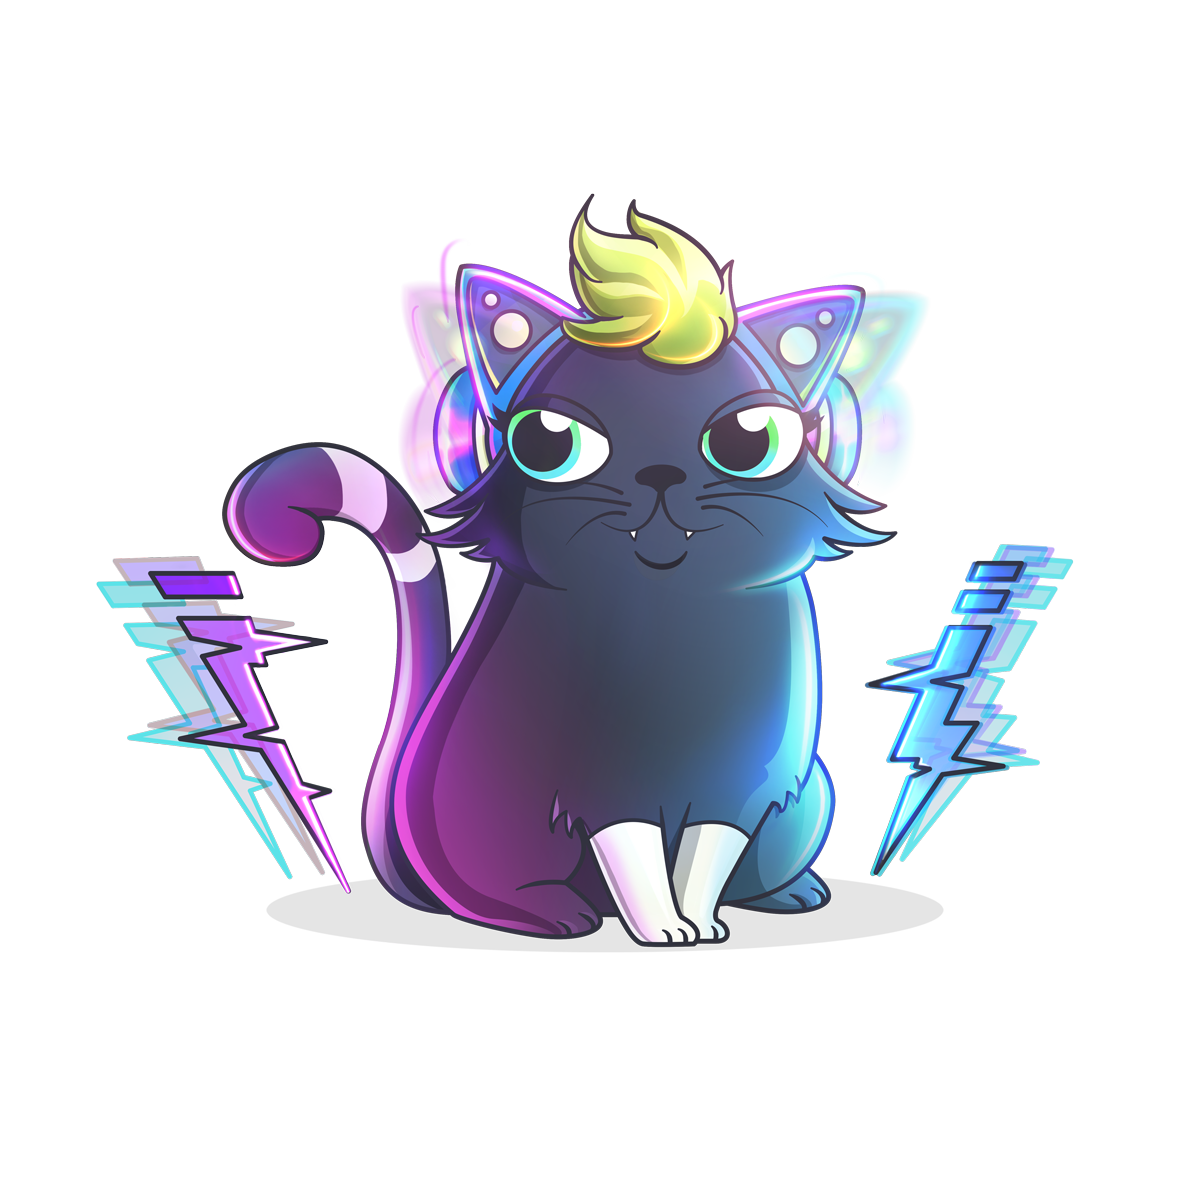 cryptokitty #1672567